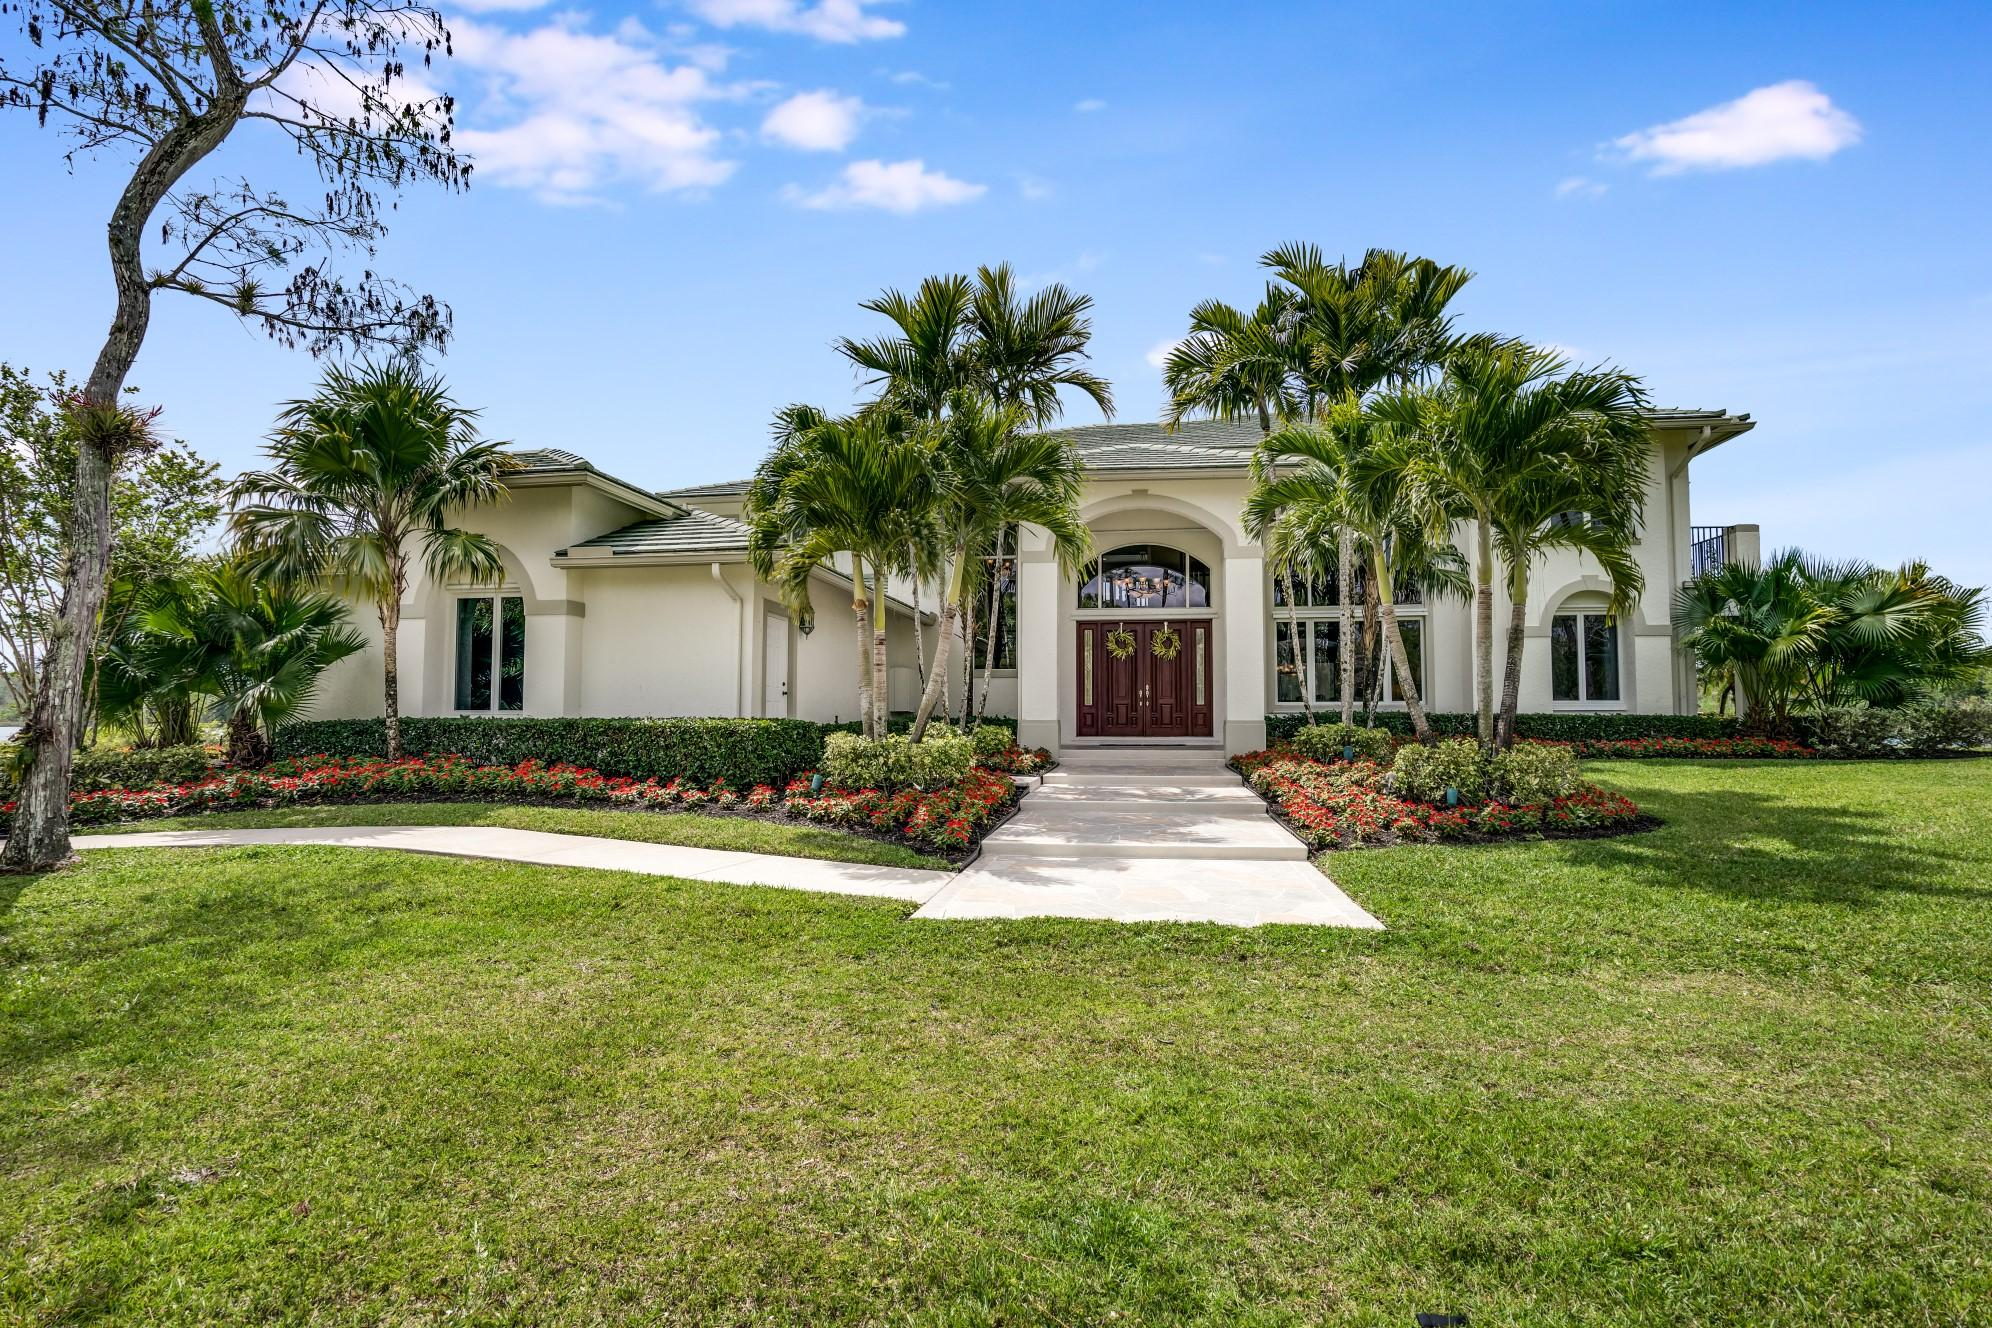 11620 Bald Cypress Lane, Lake Worth, Florida 33449, 5 Bedrooms Bedrooms, ,4 BathroomsBathrooms,Single Family,For Sale,Bald Cypress,RX-10518222